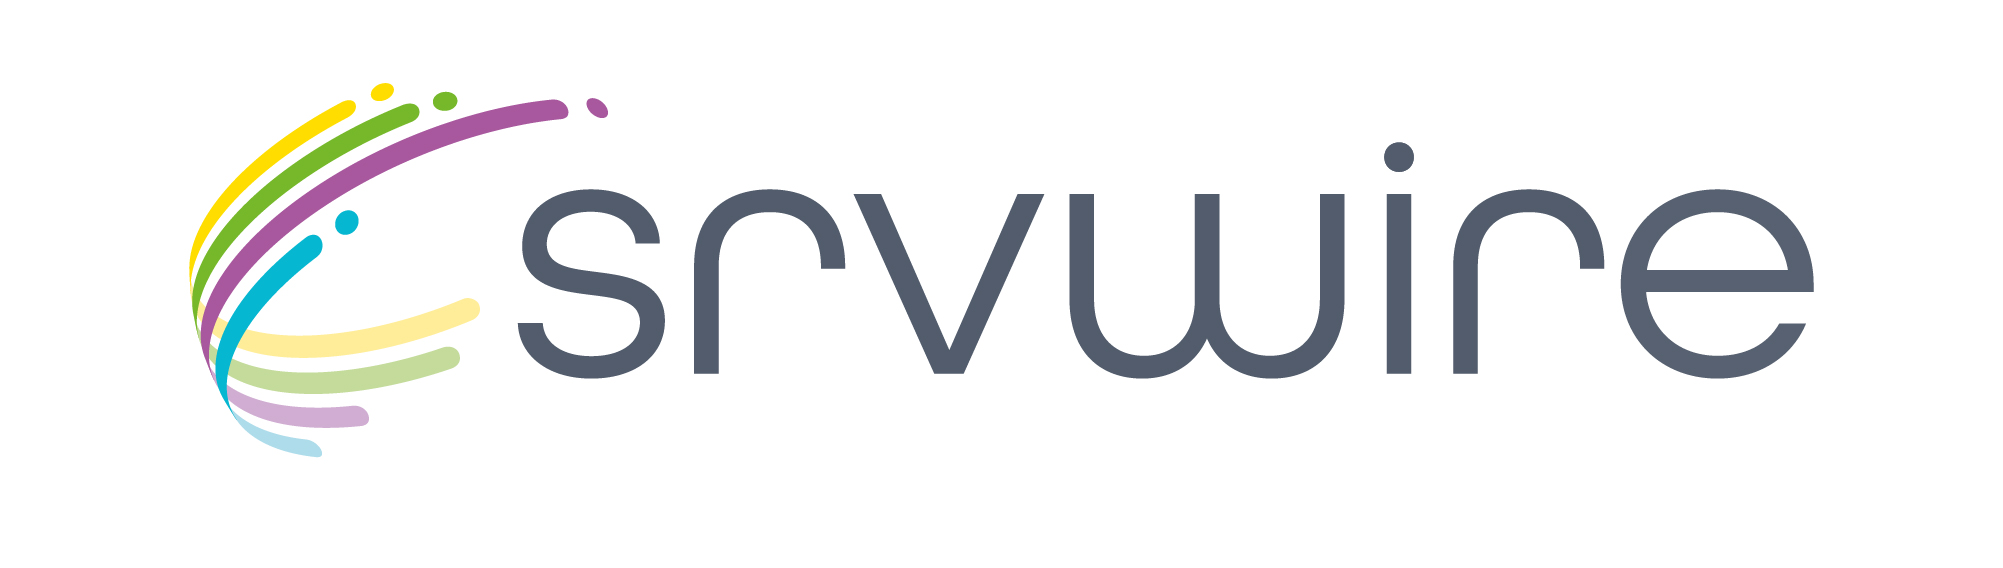 Srvwire